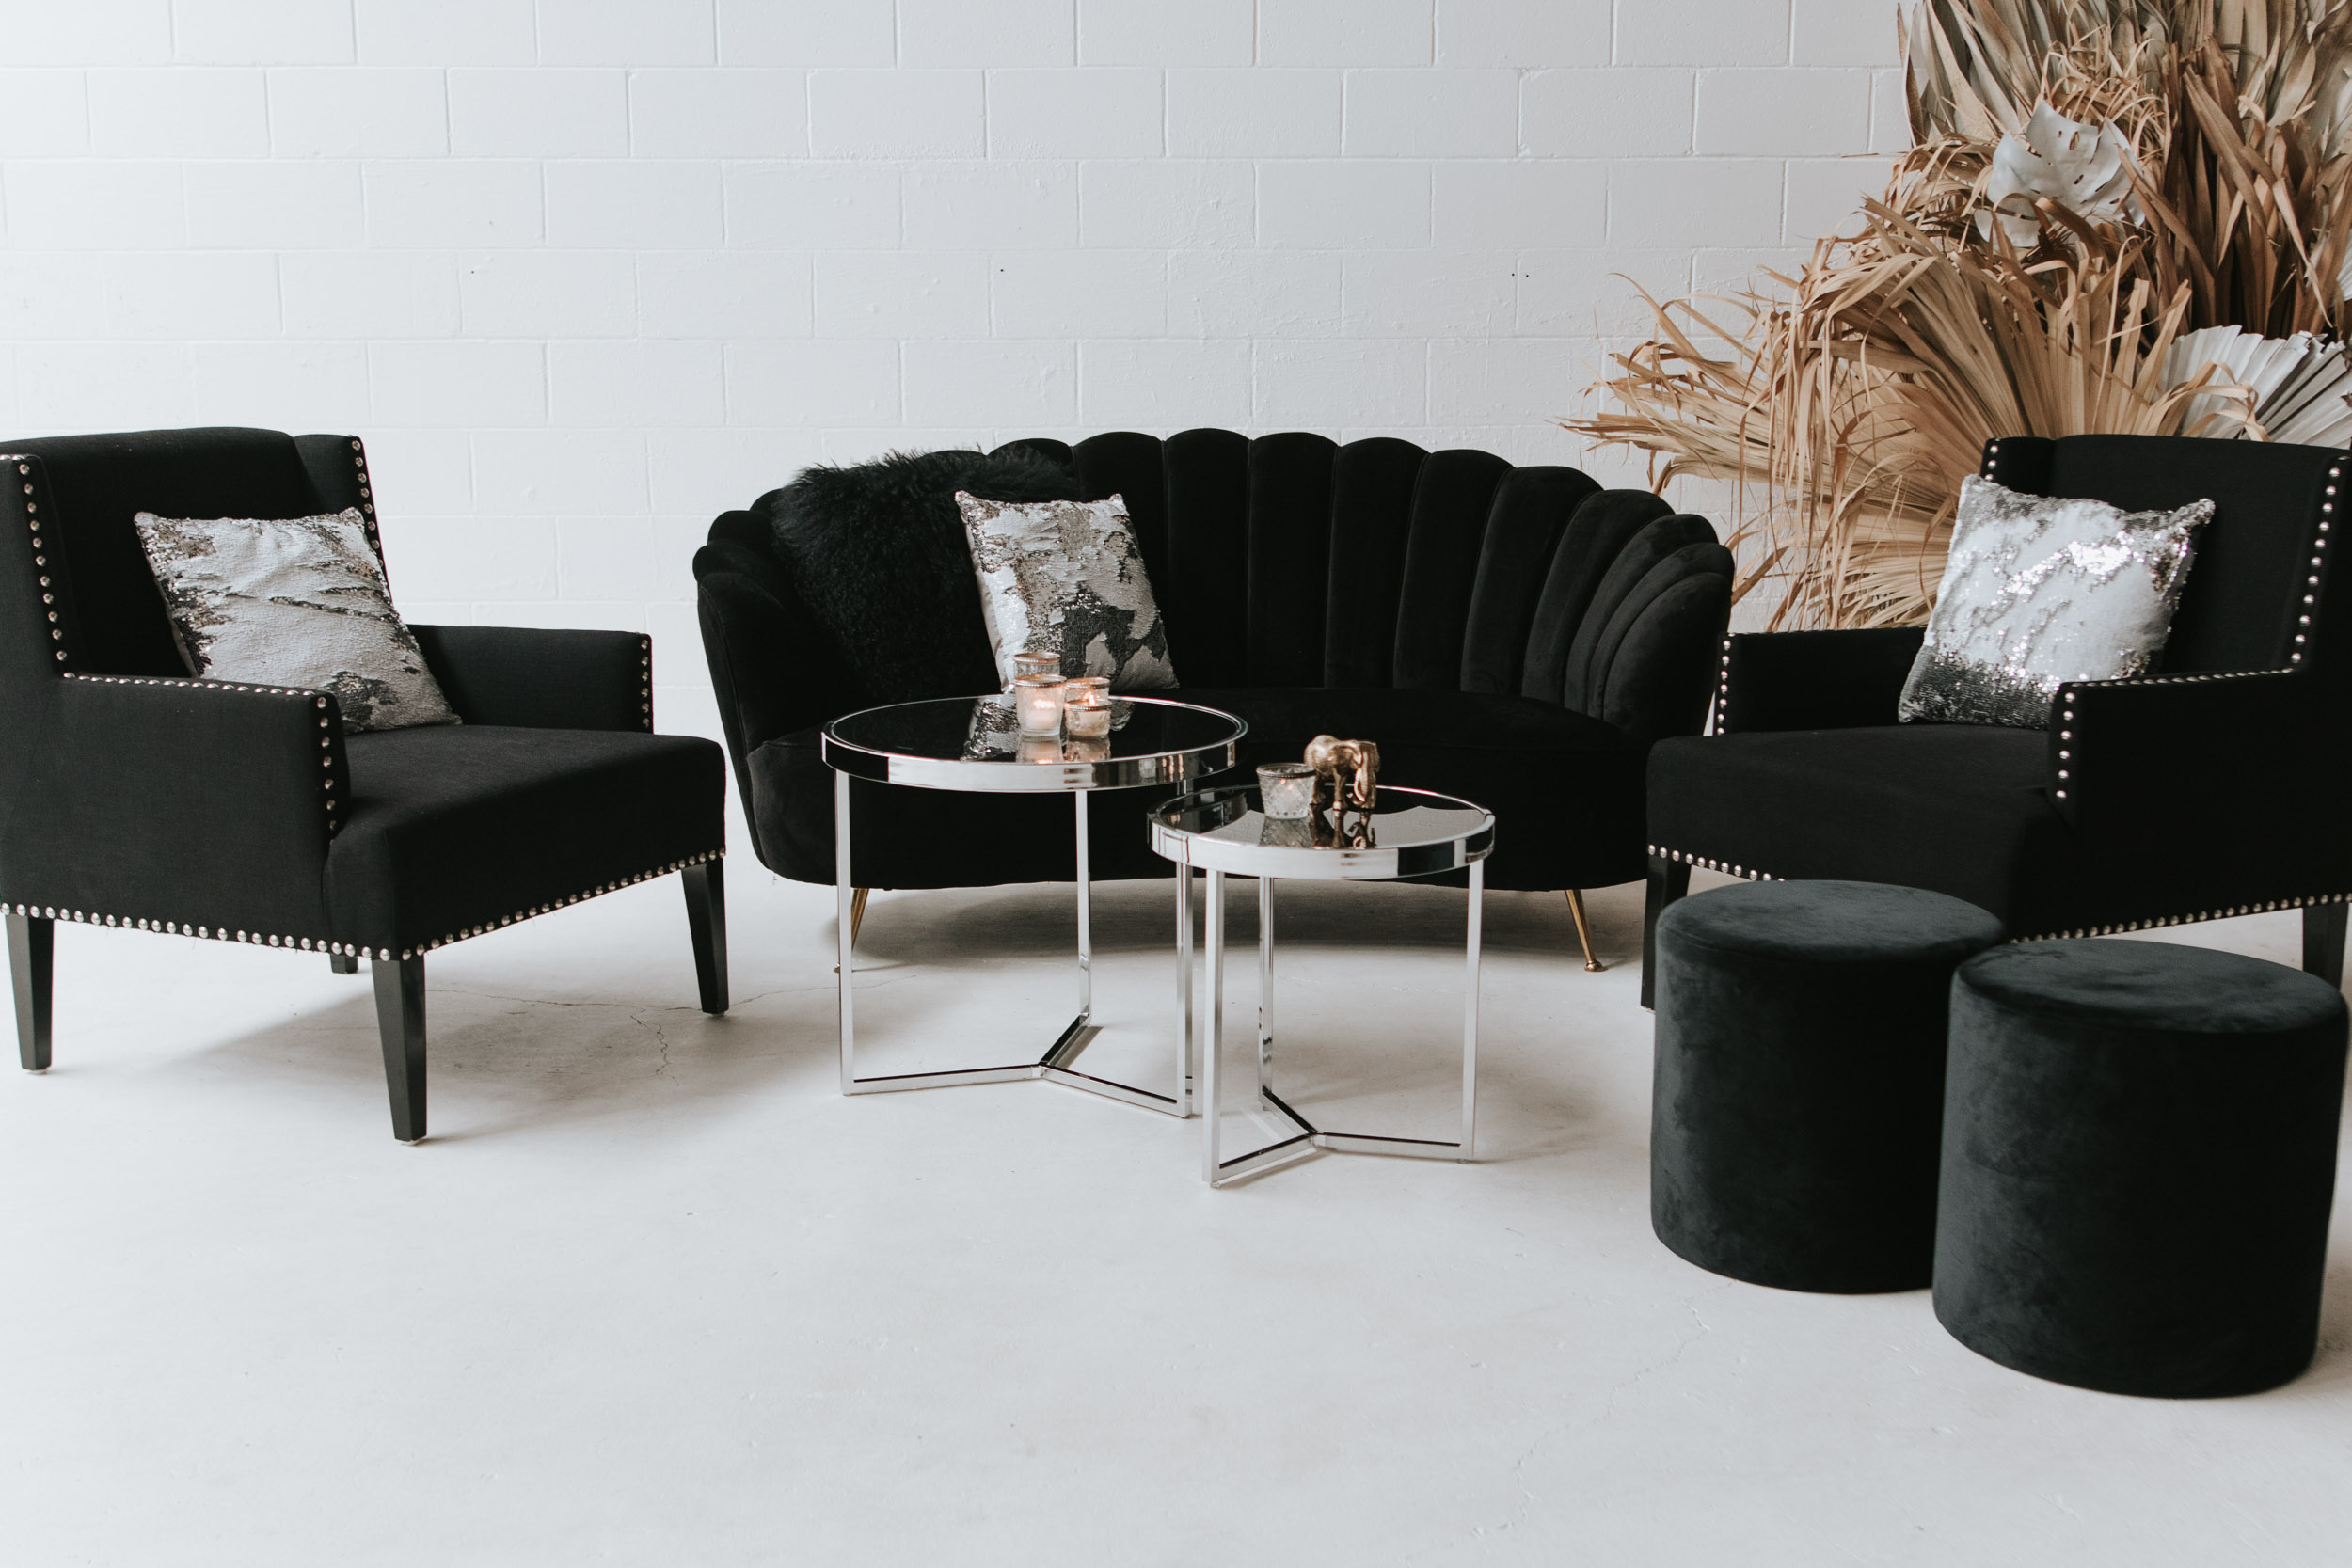 AVIDEAS INVENTORY SEATING and SETTINGS-5.jpg